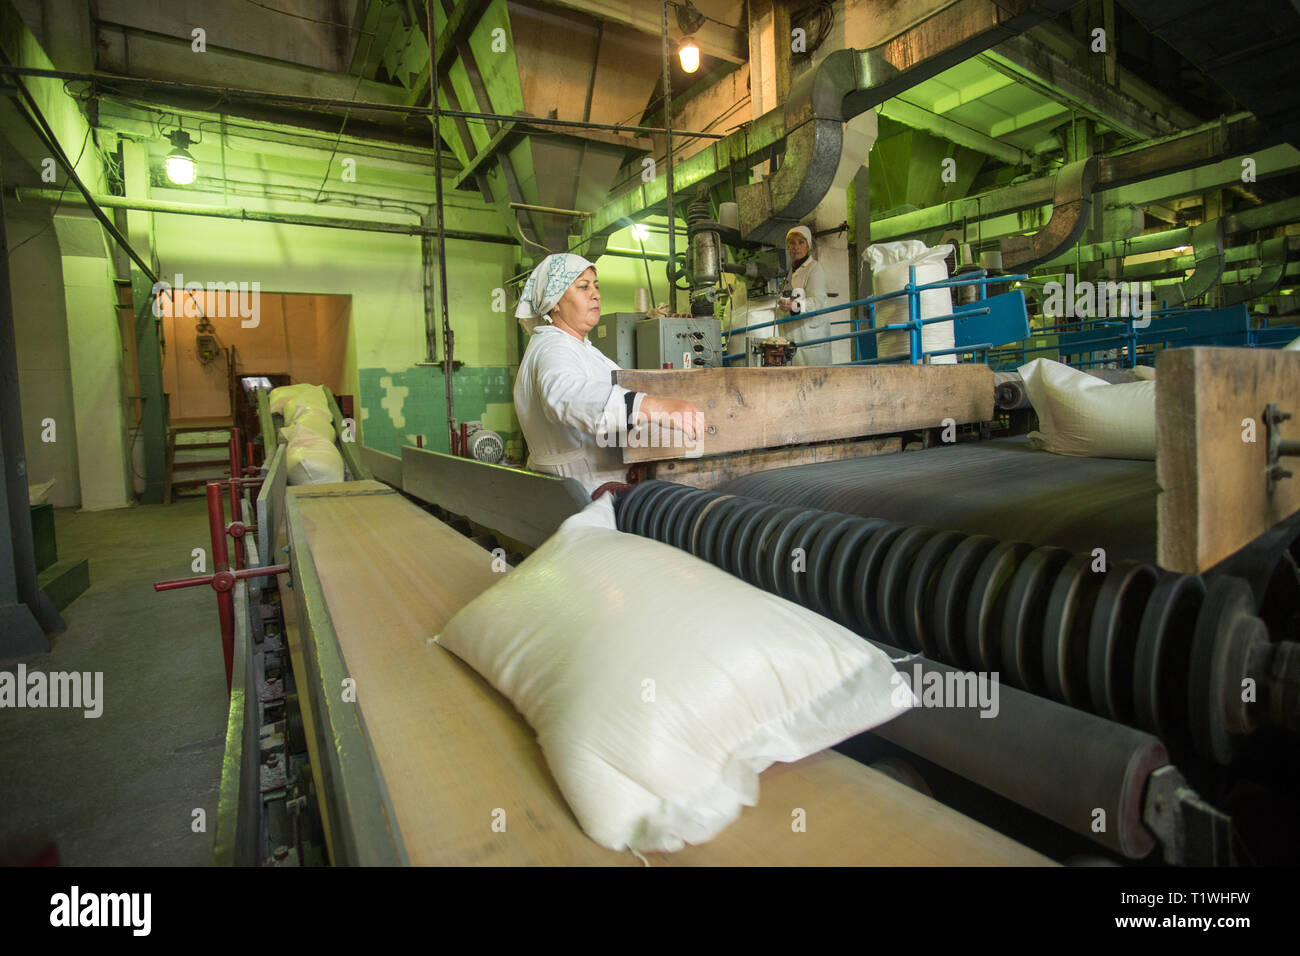 14 october 2014.Ukraine.Kyiv. The woman of average years in a white dressing gown works on a conveyor at factory of times of the Soviet, manual skills Stock Photo